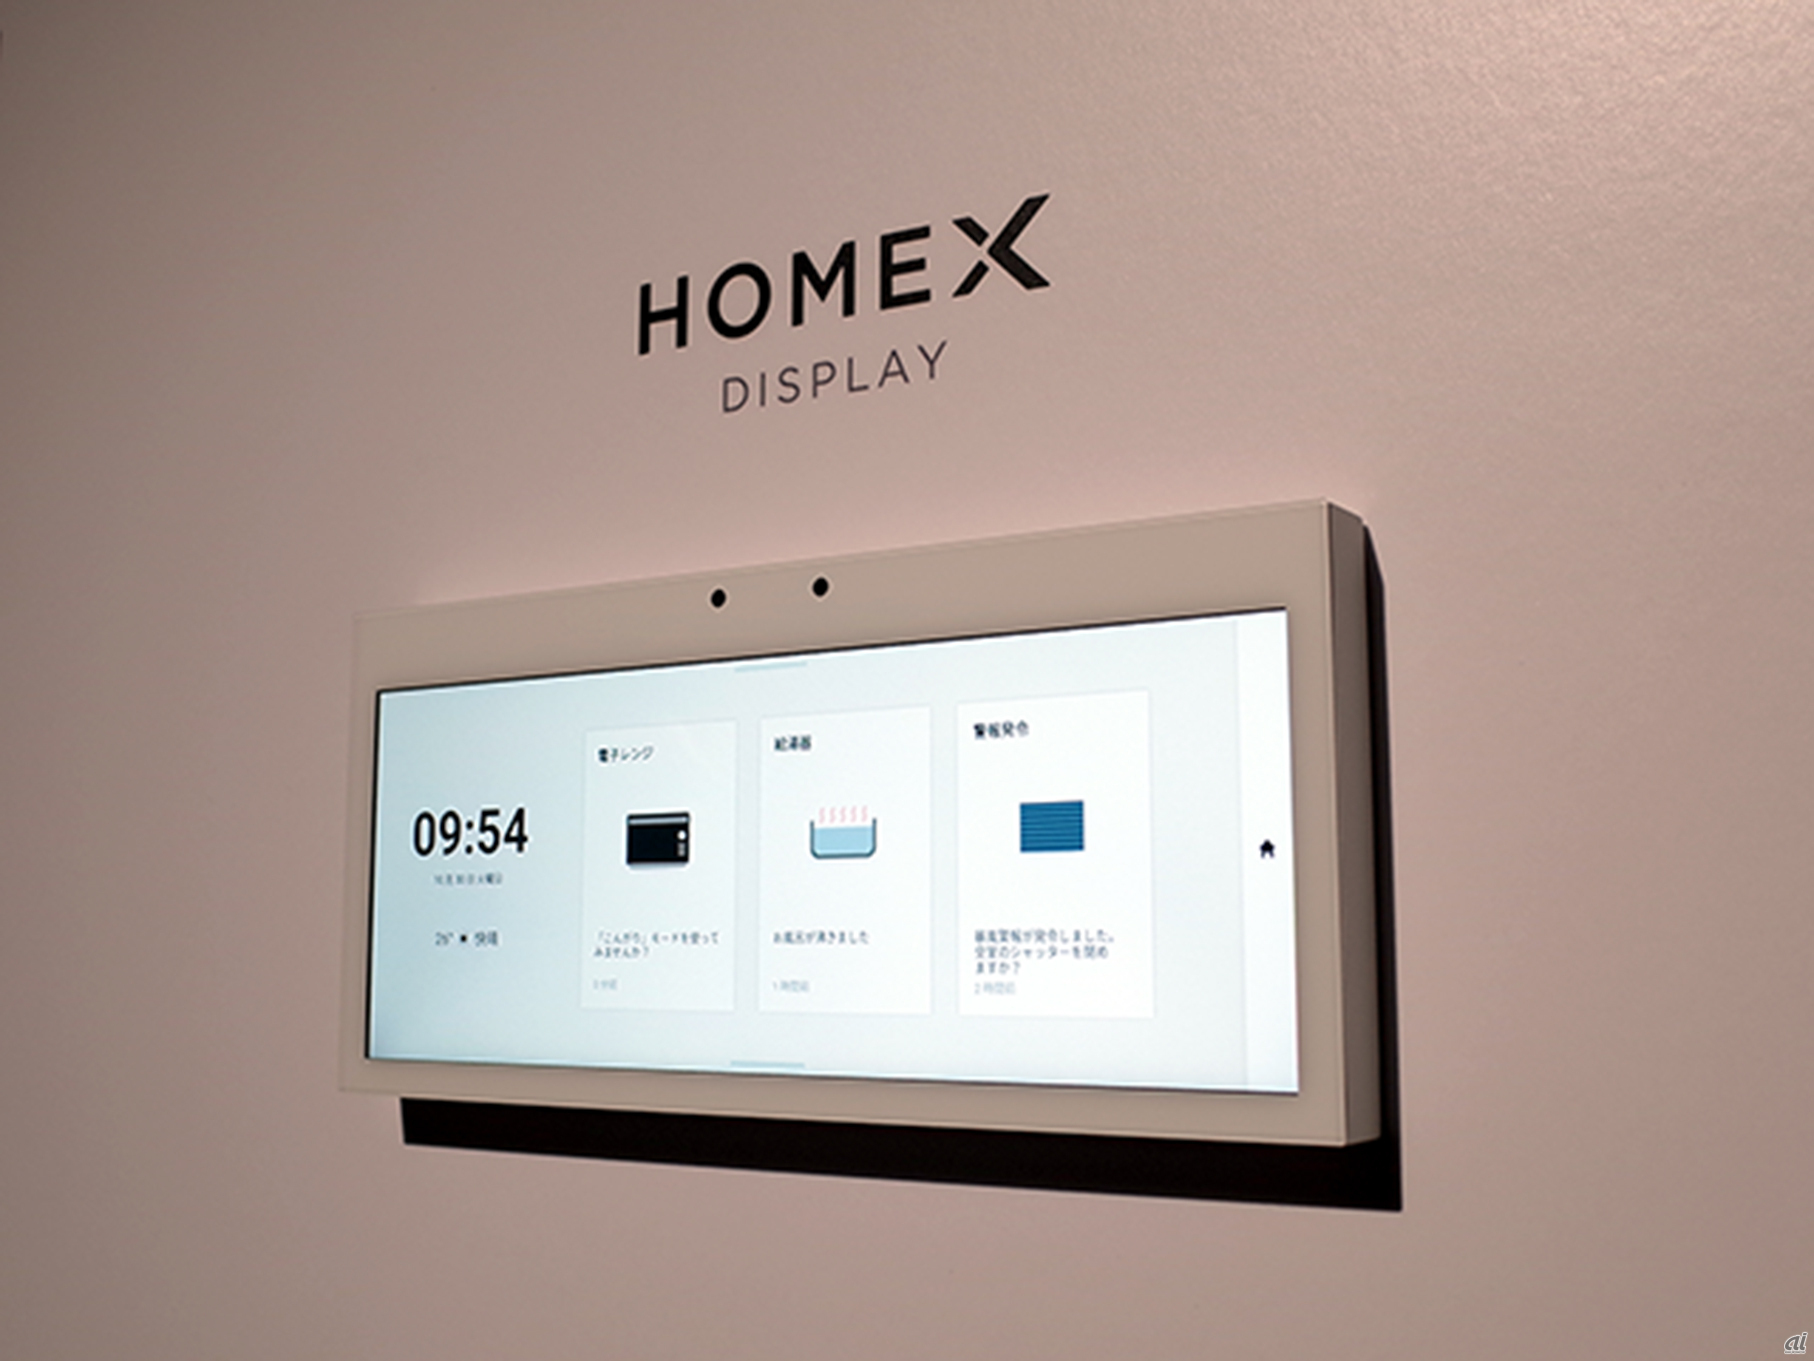 「Home X Display」